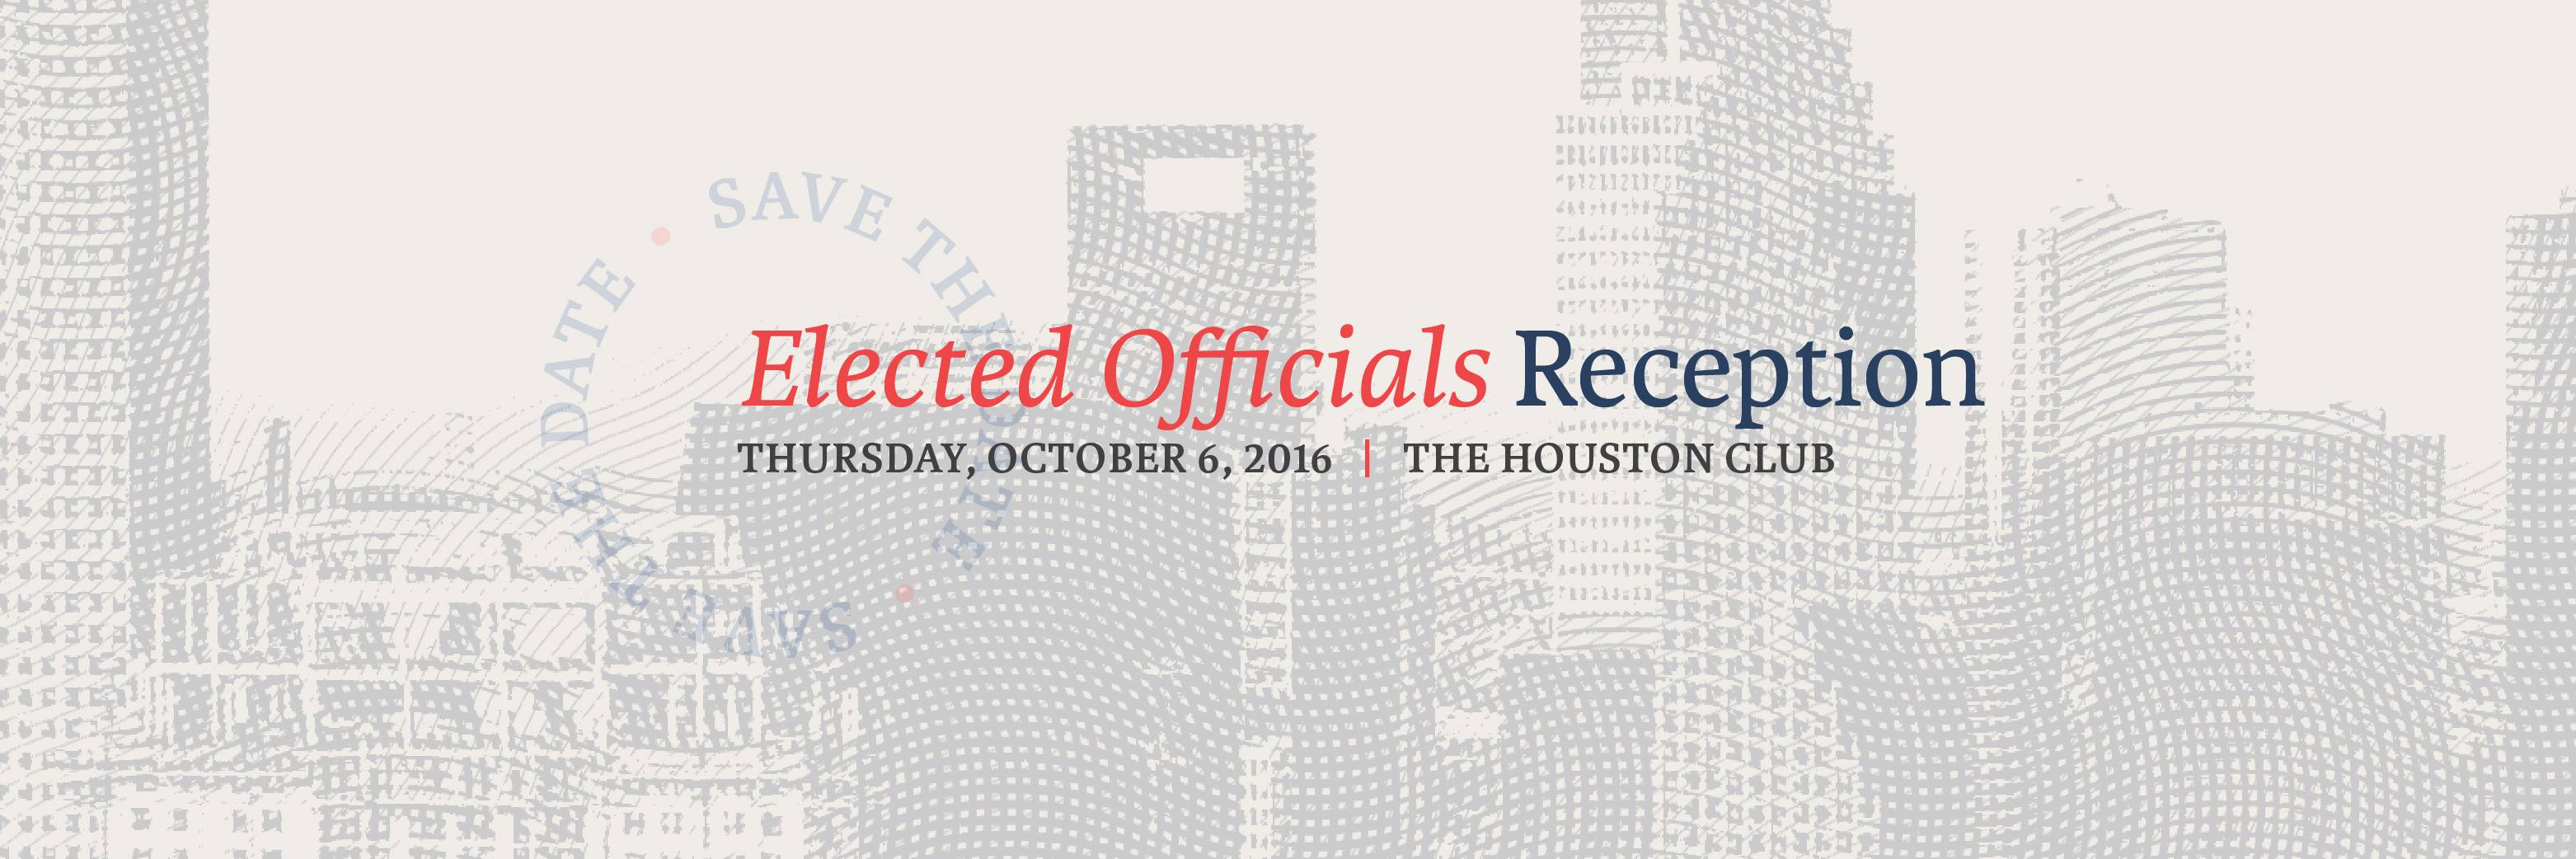 HHCC Elected Officials Reception on Thursday, October 6, 2016